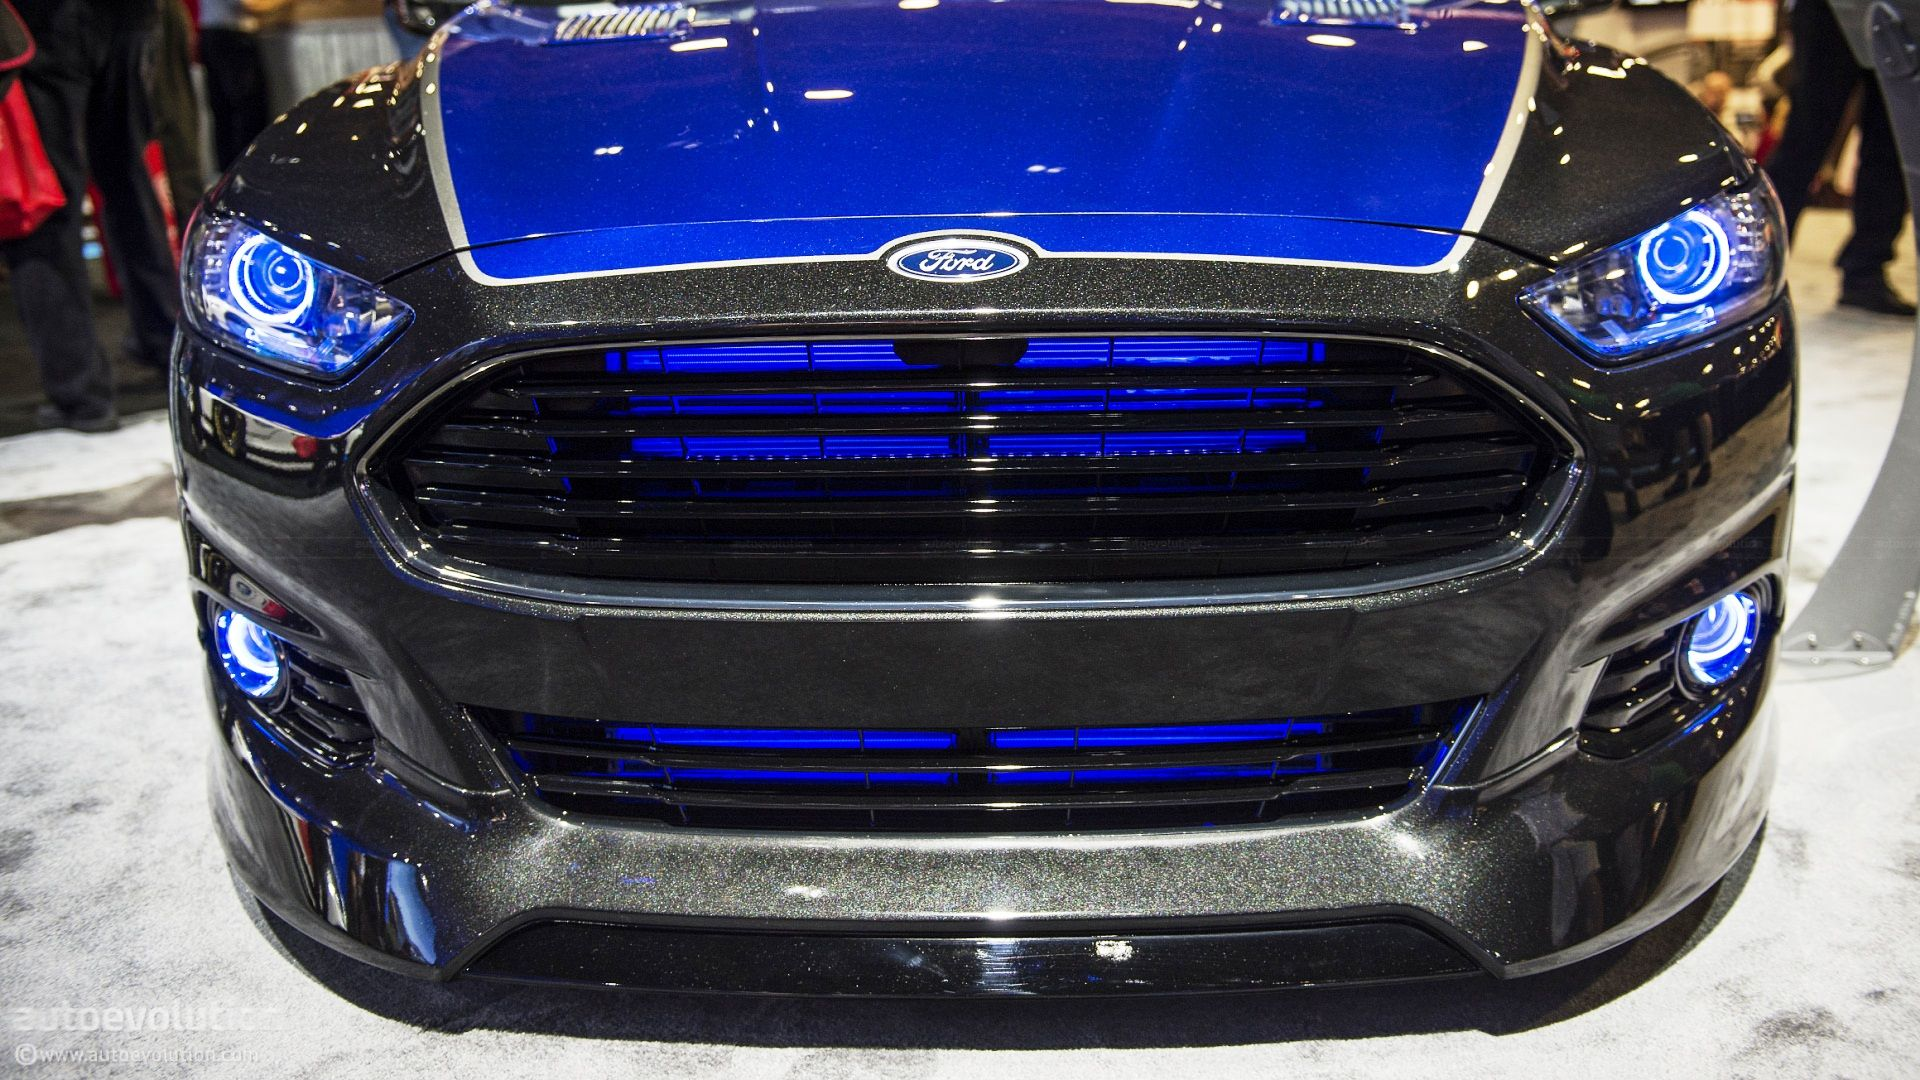 The ford fusion mrt performance version ford fusion accessories car accessories ford fusion custom